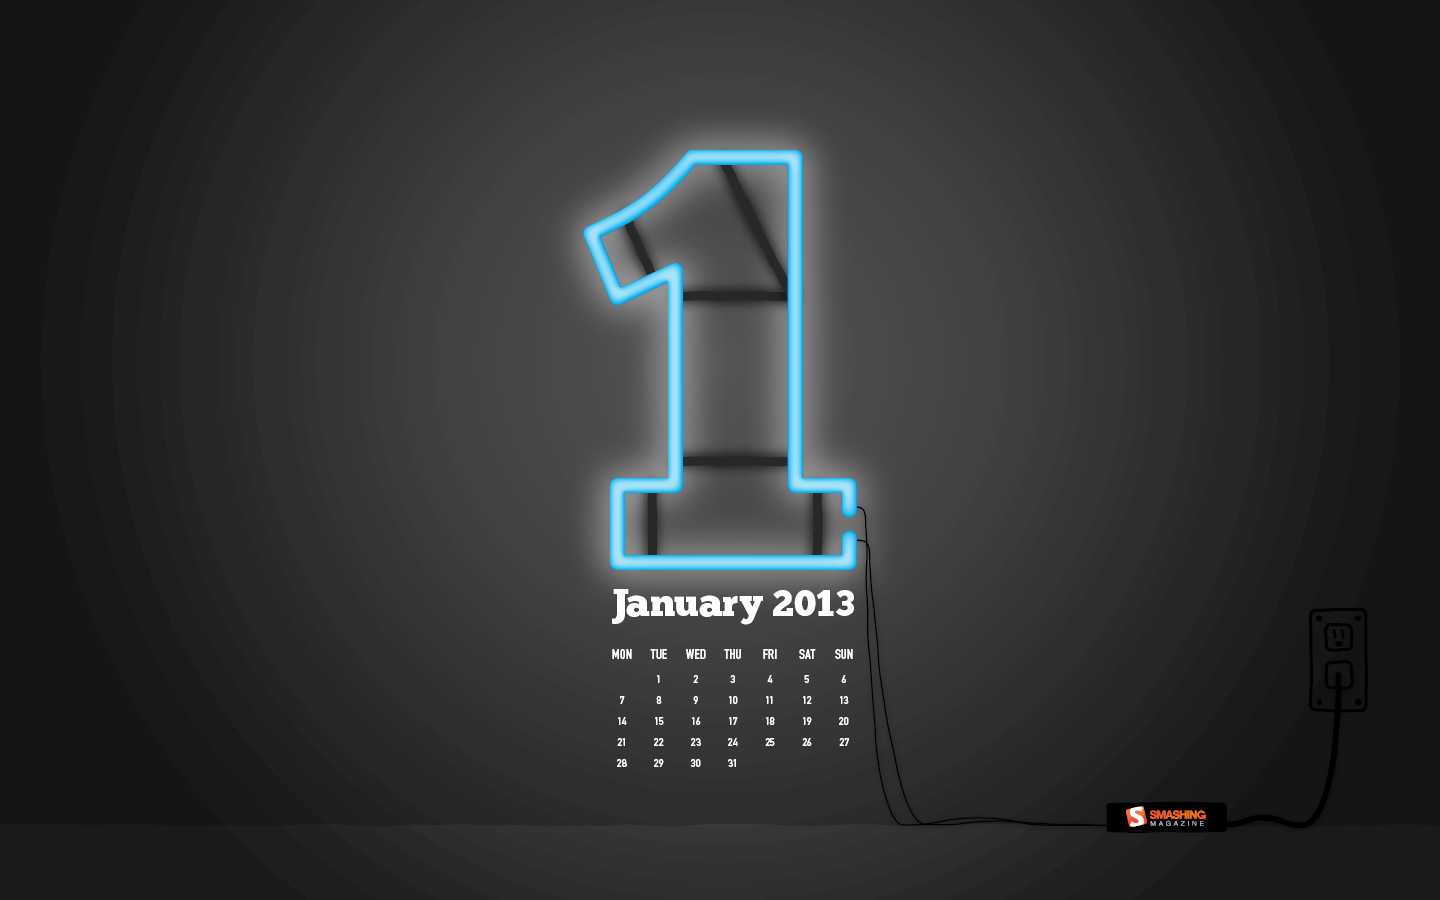 In January Calendar Wallpaper 32097